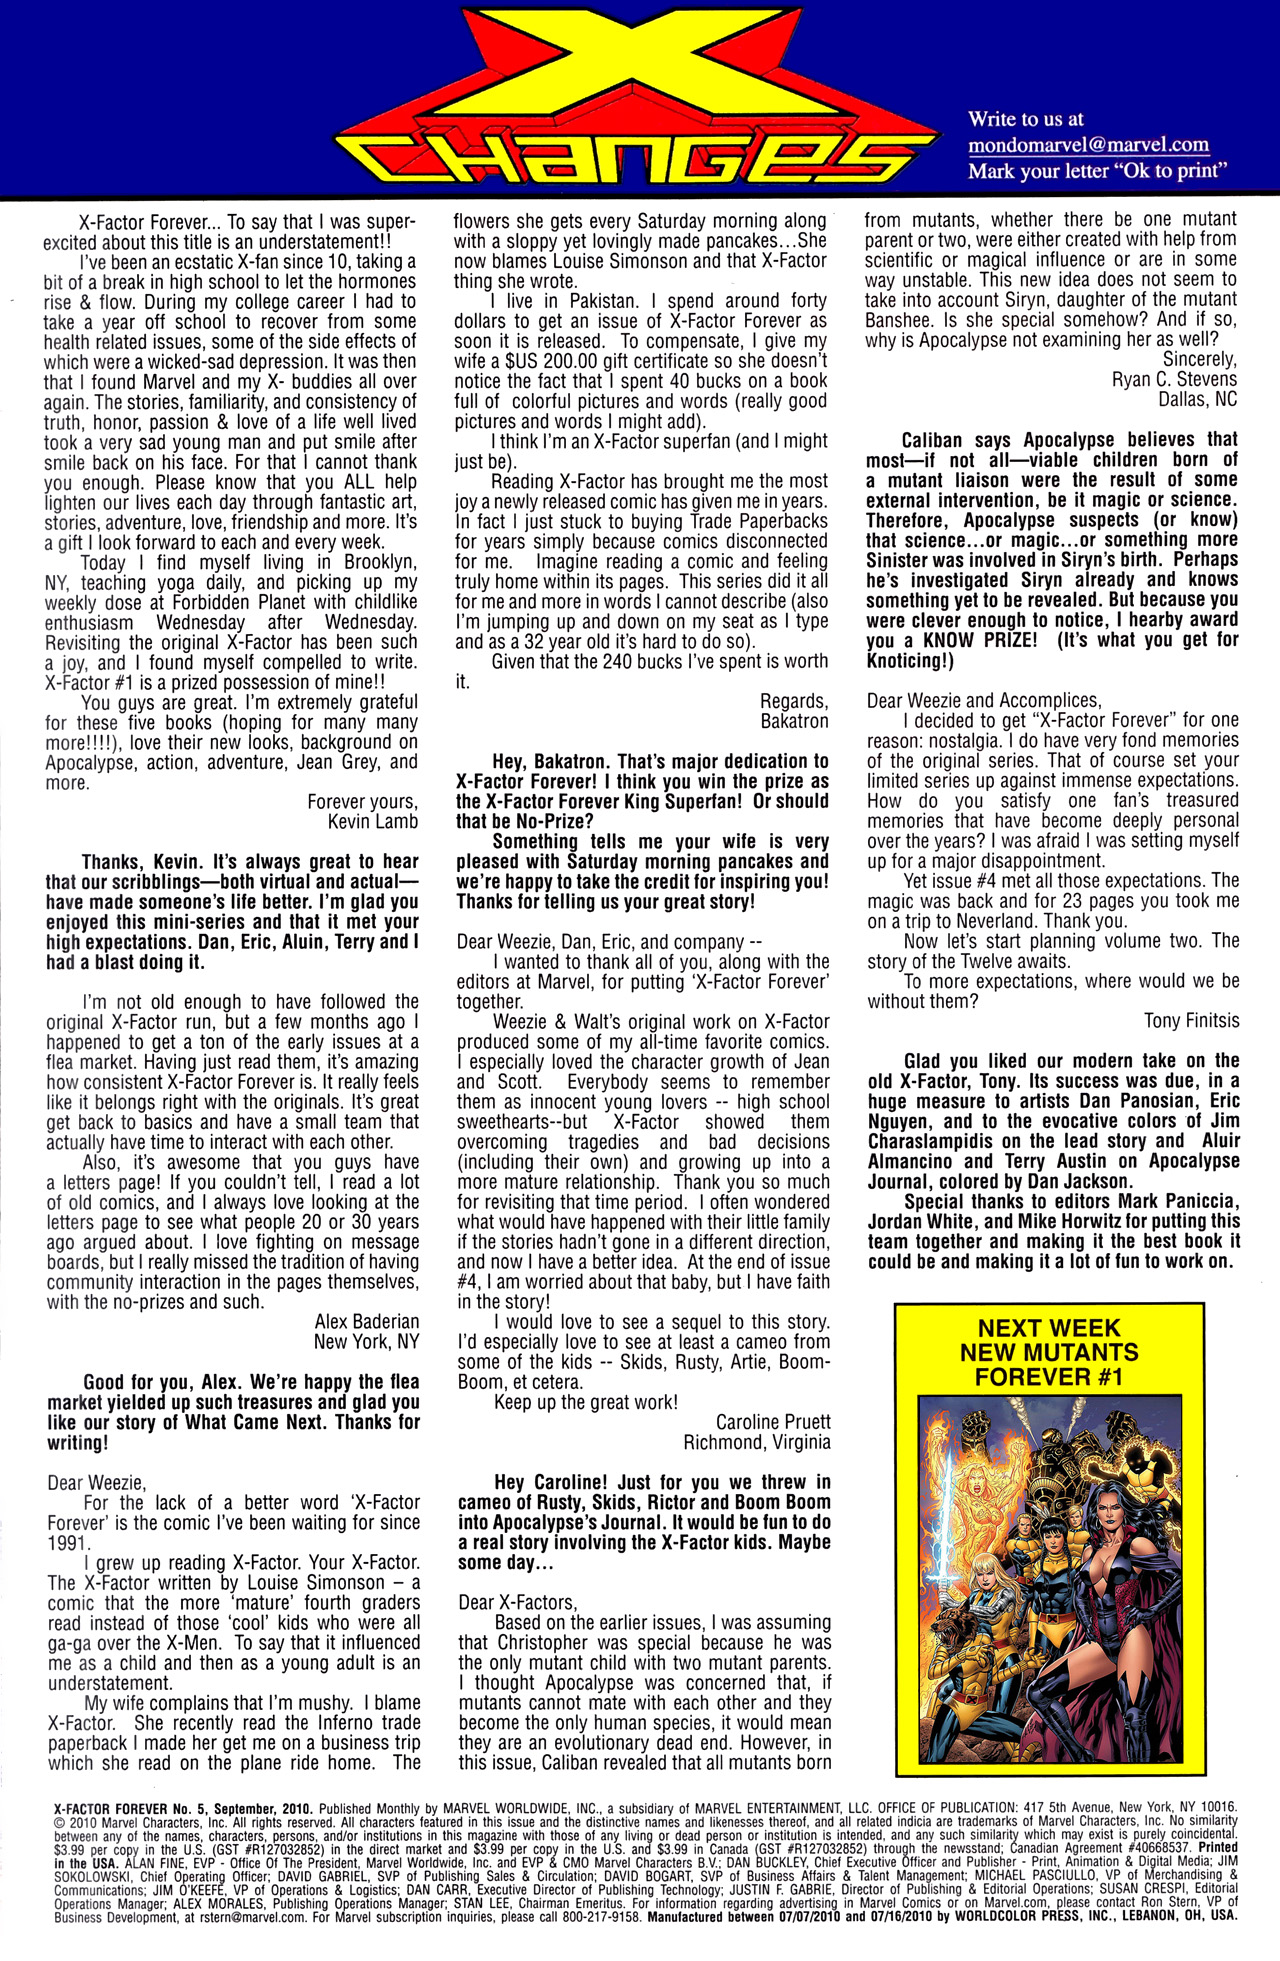 Read online X-Factor Forever comic -  Issue #5 - 25